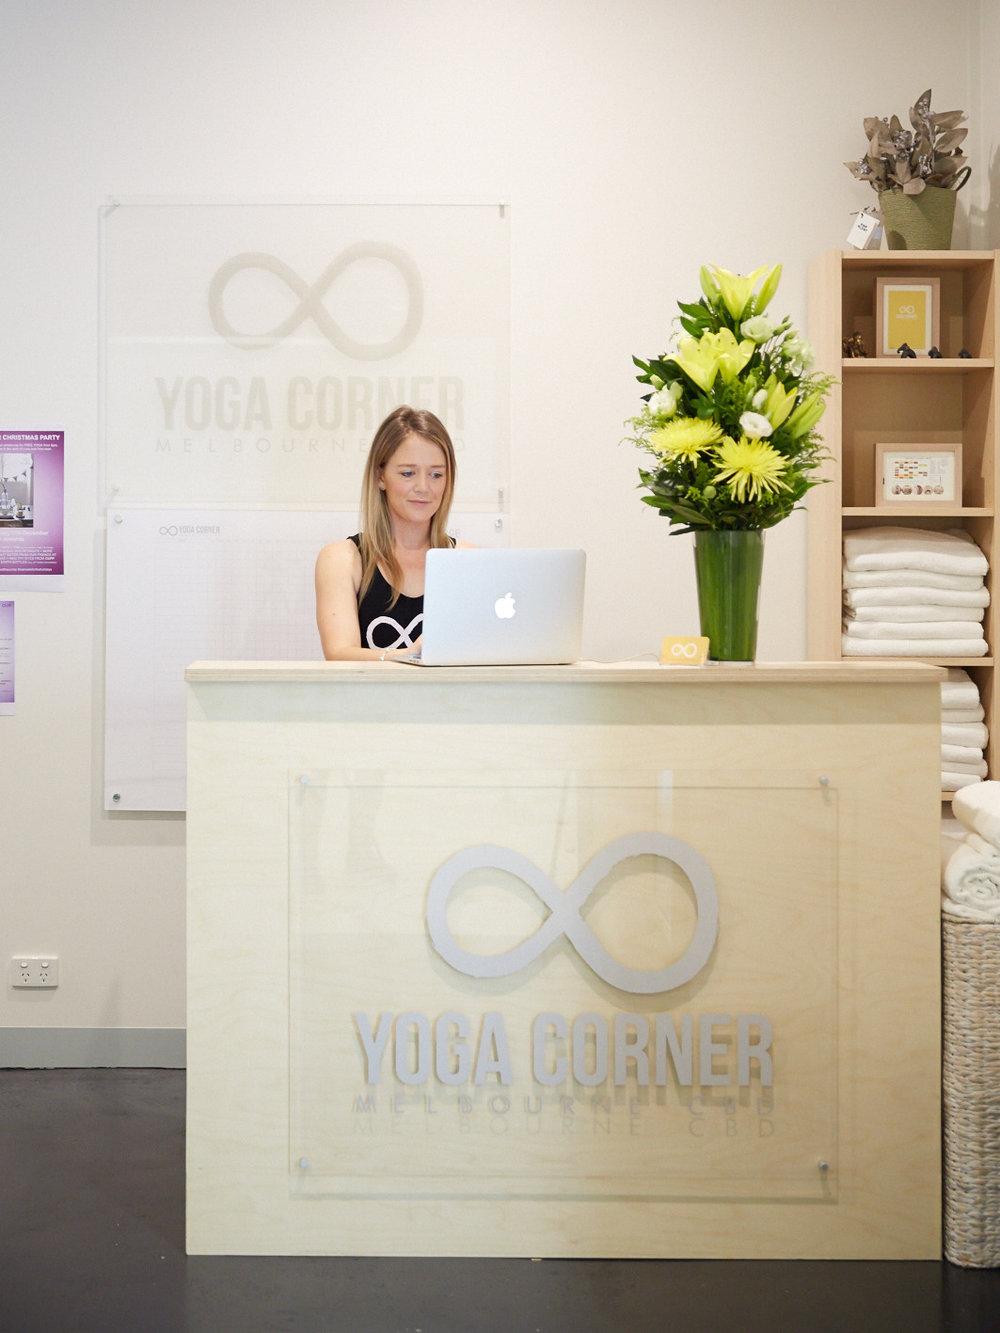 YOGA CORNER MELBOURNE RECEPTION